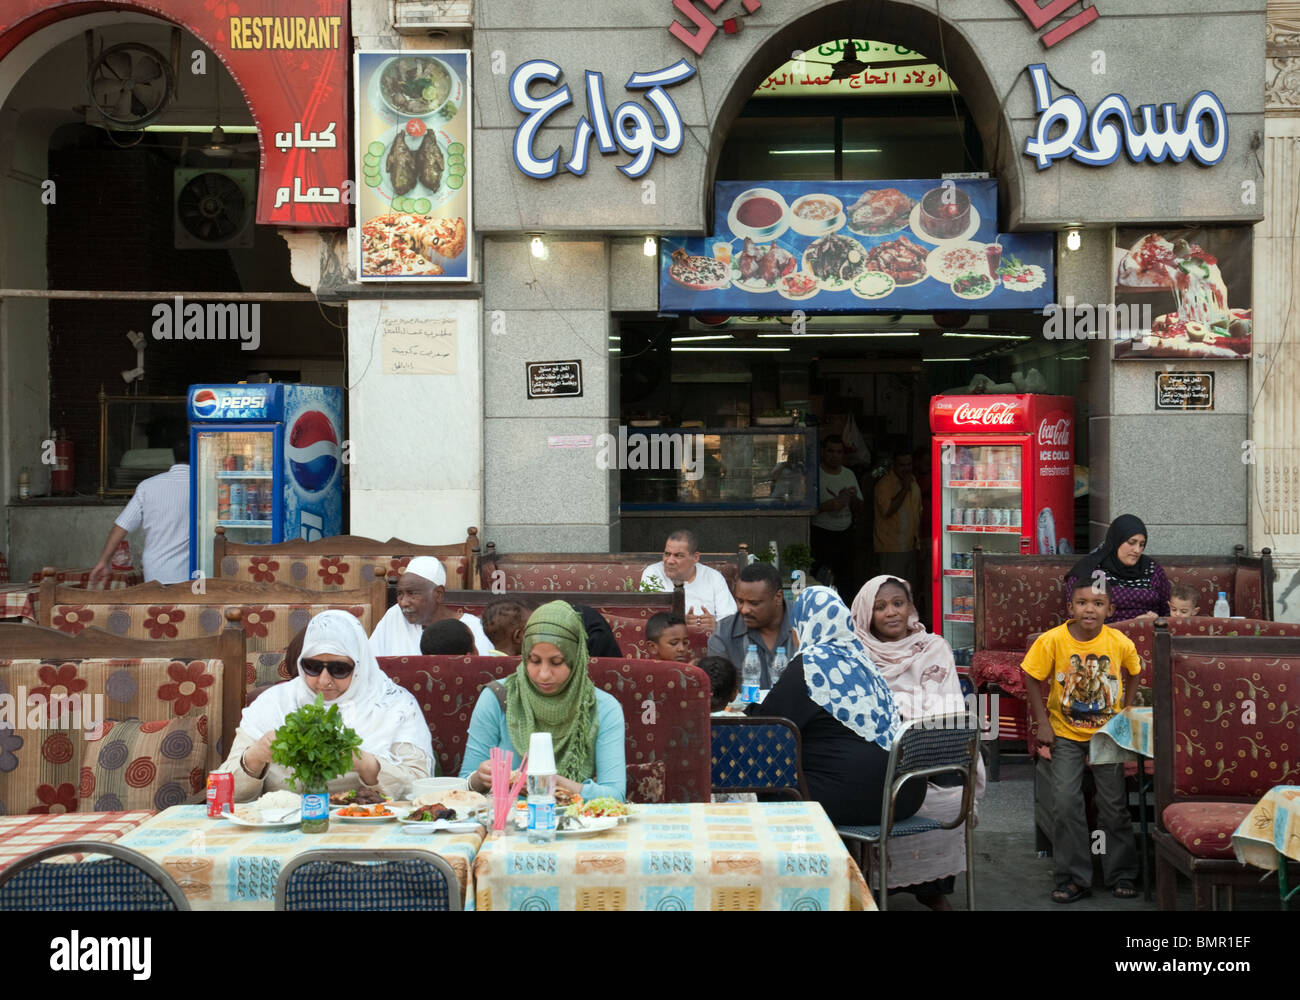 people-congregating-in-the-restaurants-and-cafes-of-the-islamic-quarter-BMR1EF.jpg